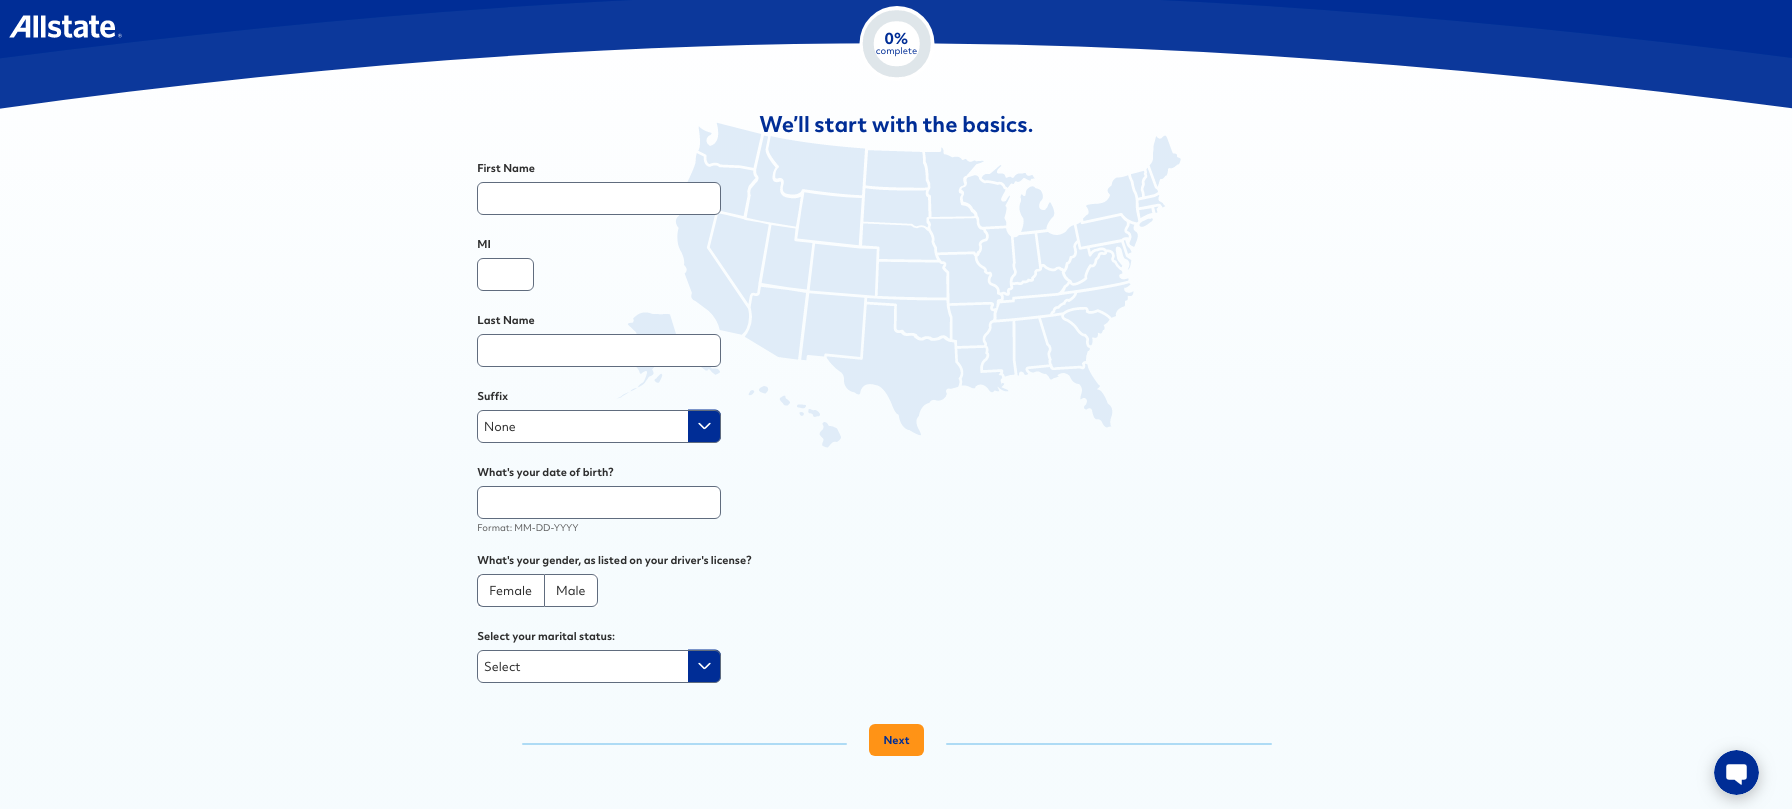 screen capture of allstate's sign-up form online showing how easy it is to navigate the process (background is a plain, featureless map of USA)